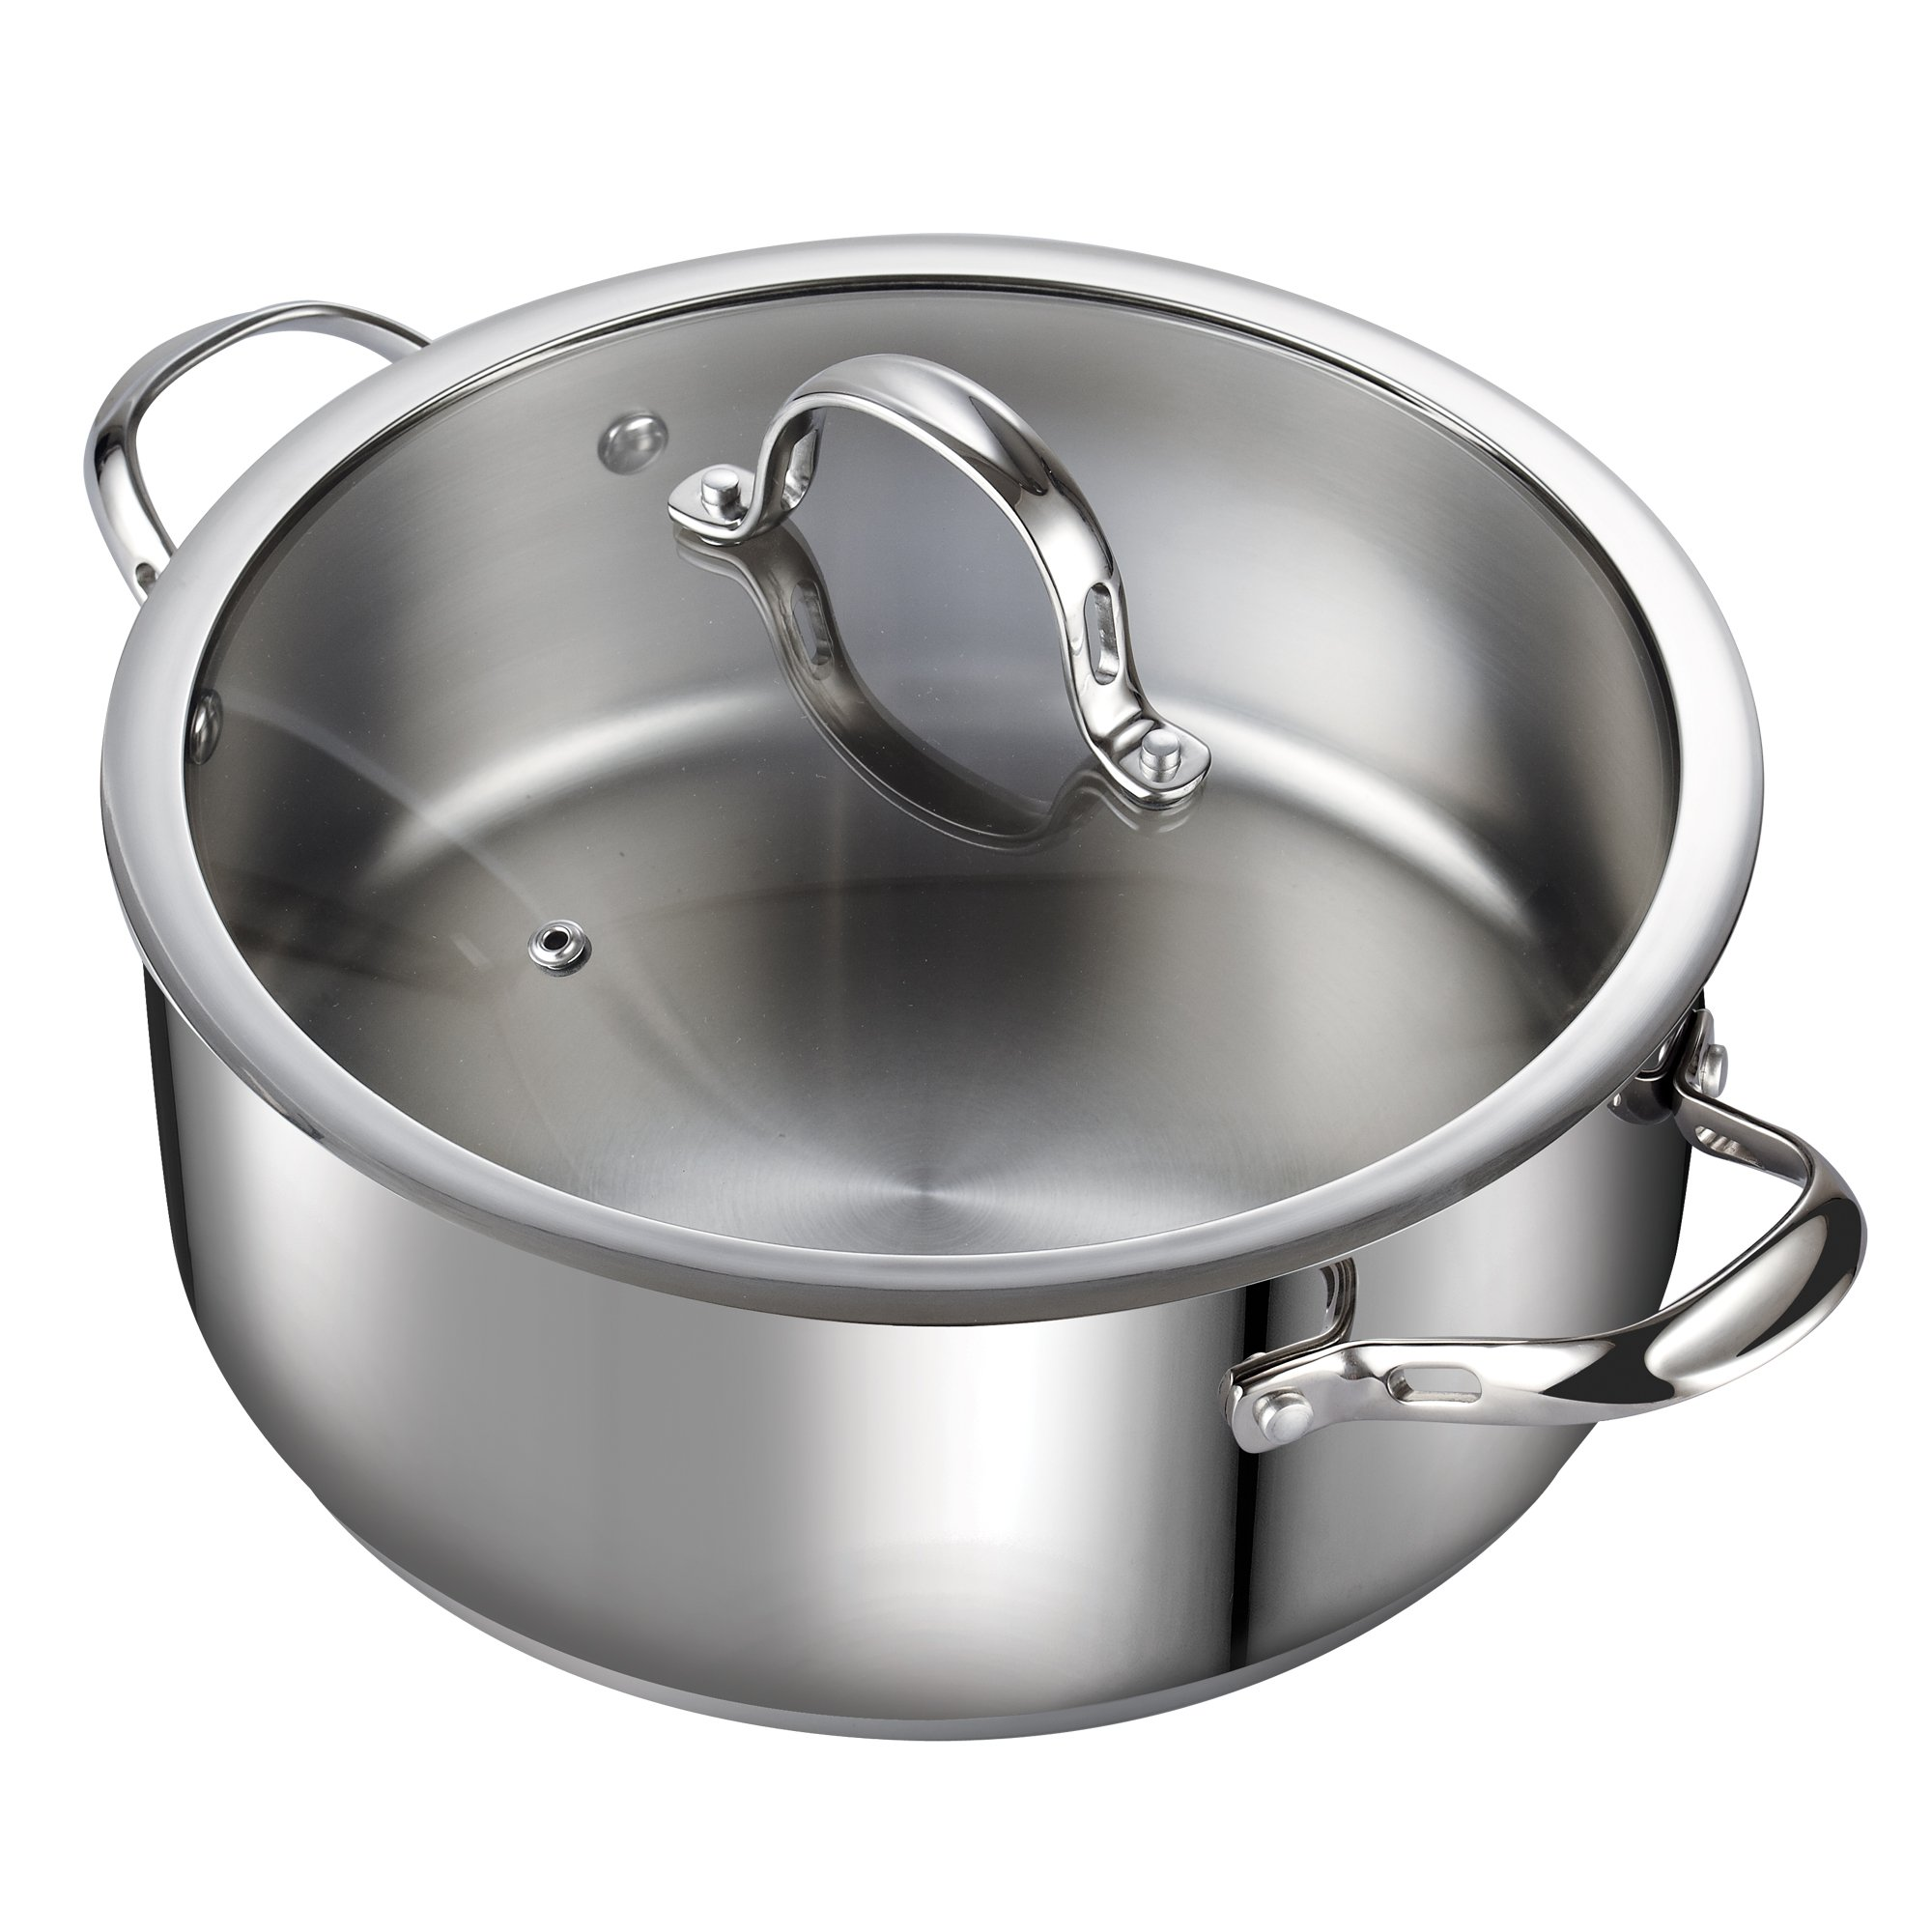 Cooks Standard 7-Quart Classic Stainless Steel Dutch Oven Casserole Stockpot with Lid by Cooks Standard